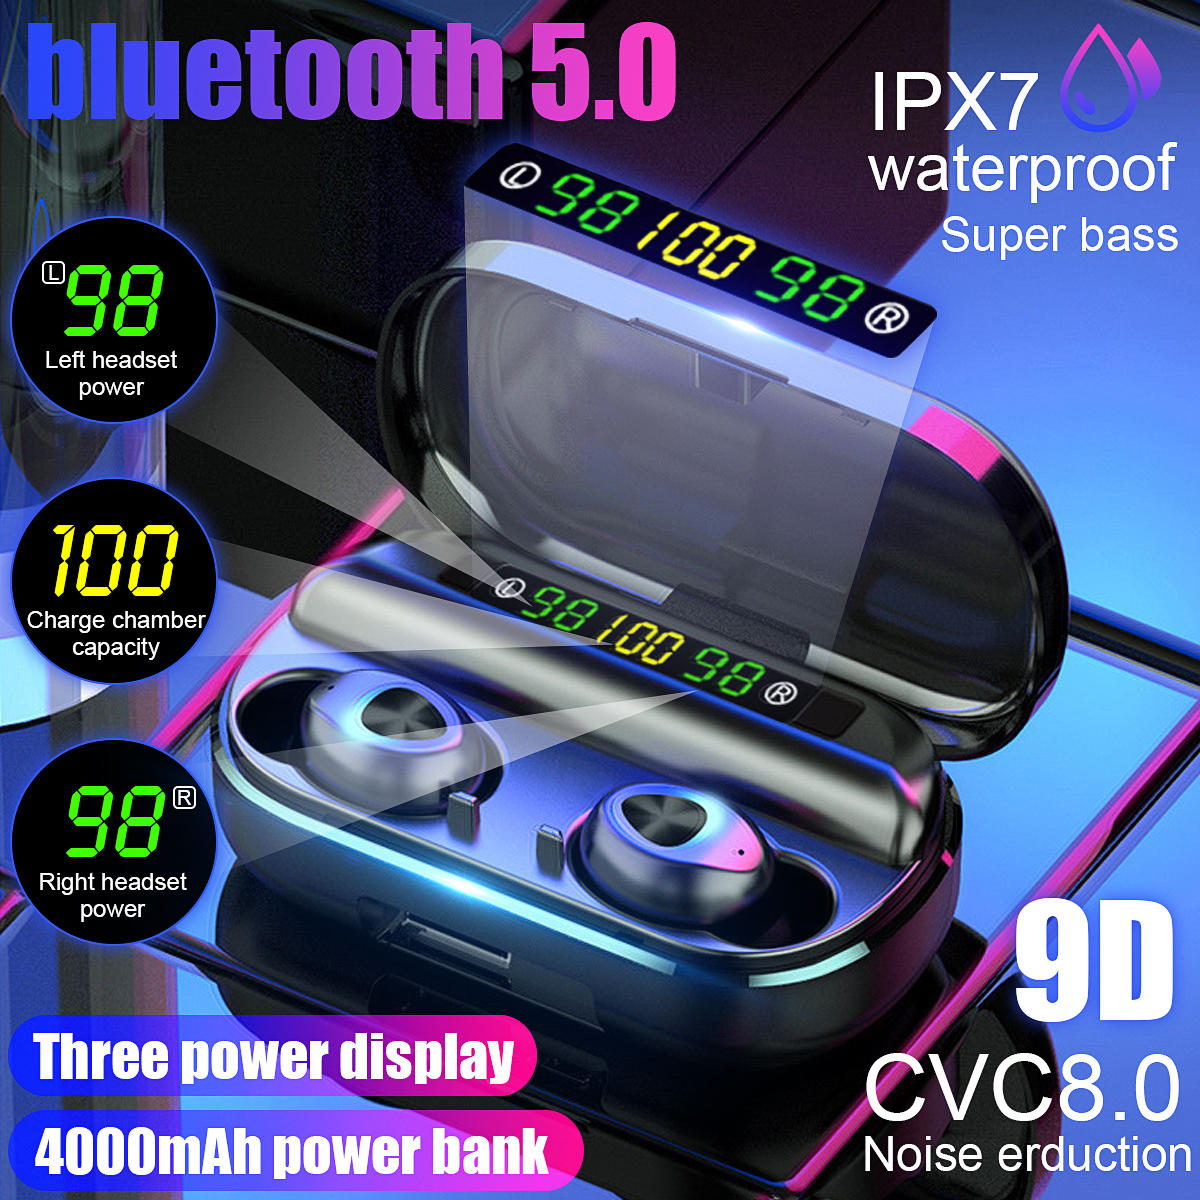 TWS 4000mAh v5 0 bluetooth Stereo Wireless Earphones Waterproof Earbuds With 3 LED Display Sport Wireless Headsets